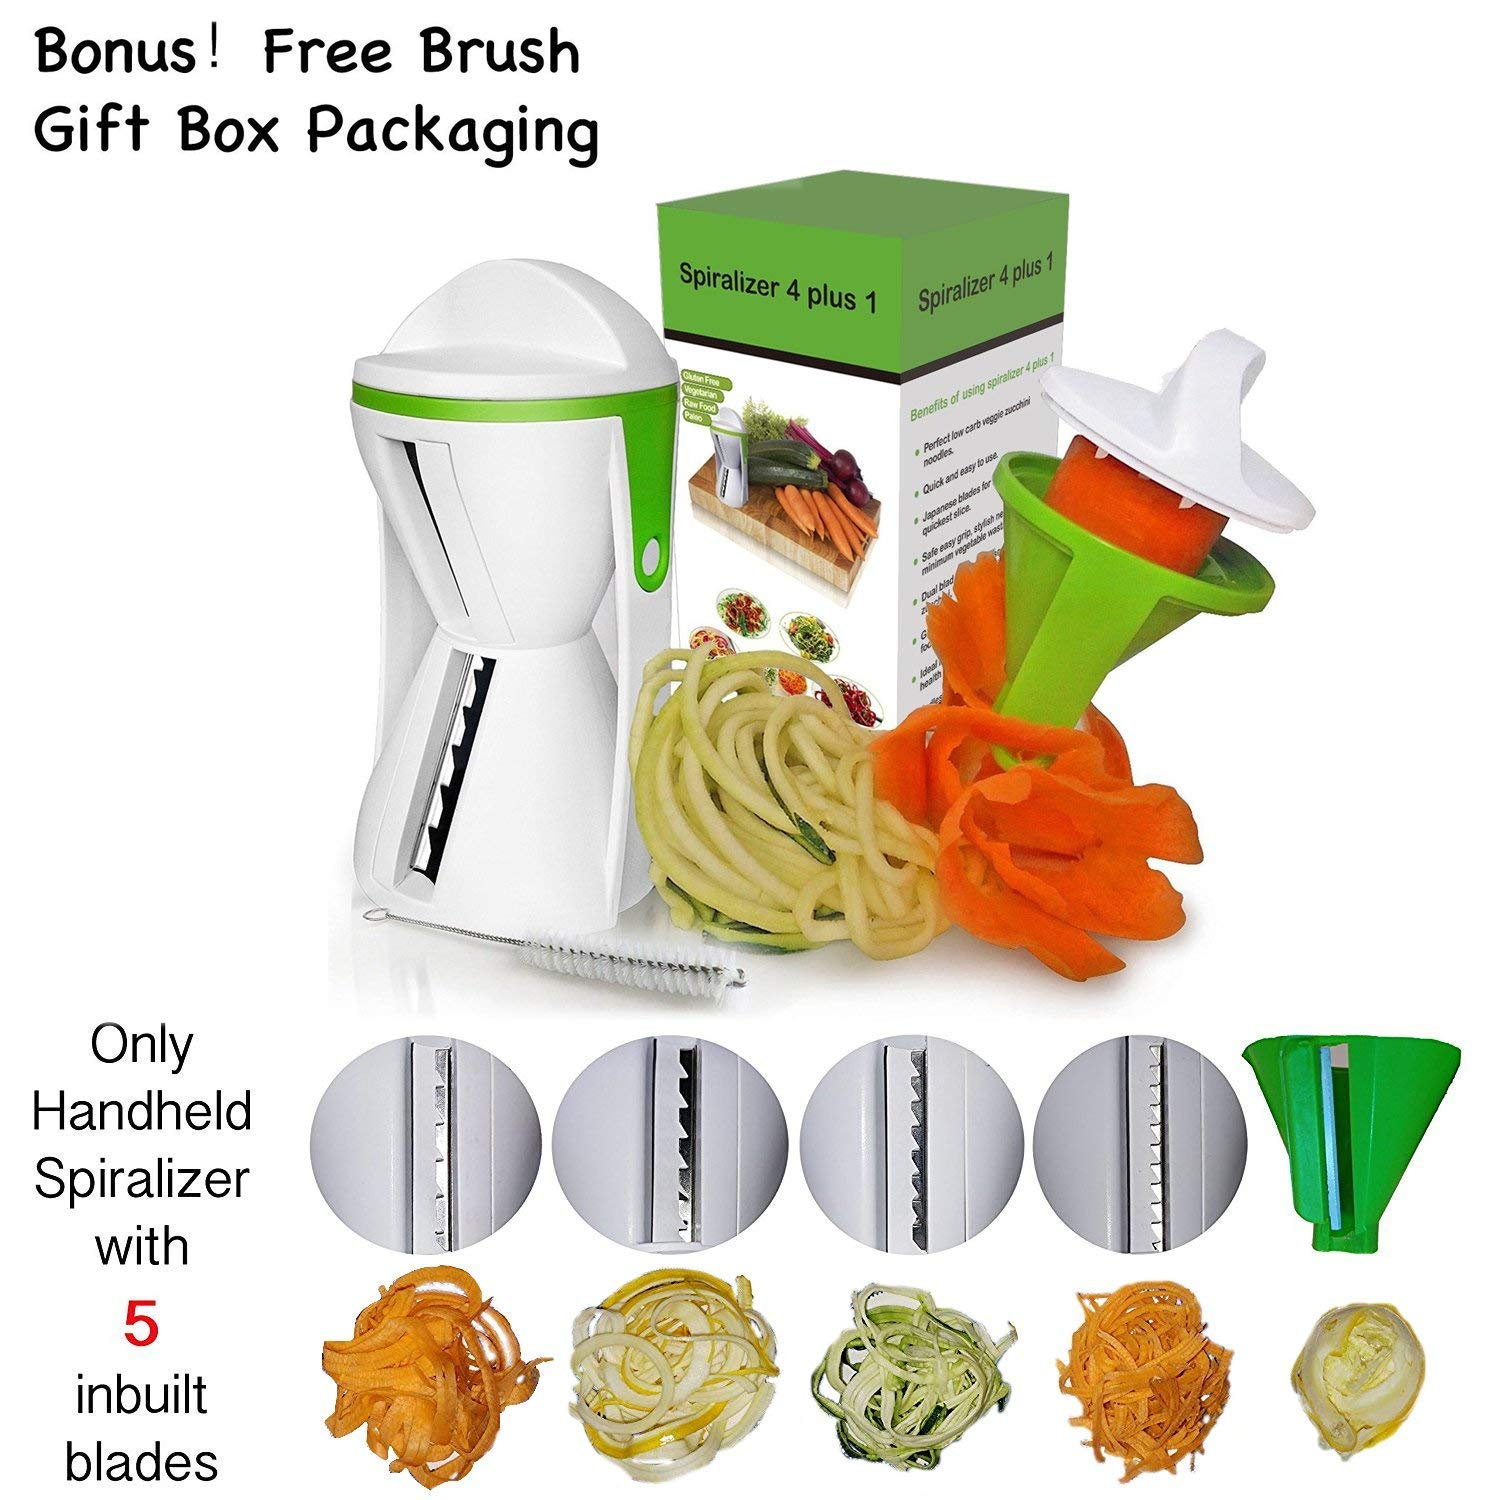 Otdair NEW DESIGN Spiralizer - 5 Blade Spiral Slicer -Handheld Vegetable Spiralizer - FREE brush - Zucchini Noodle Maker - Vegetable Cutter-Spiralizer 4 Plus 1